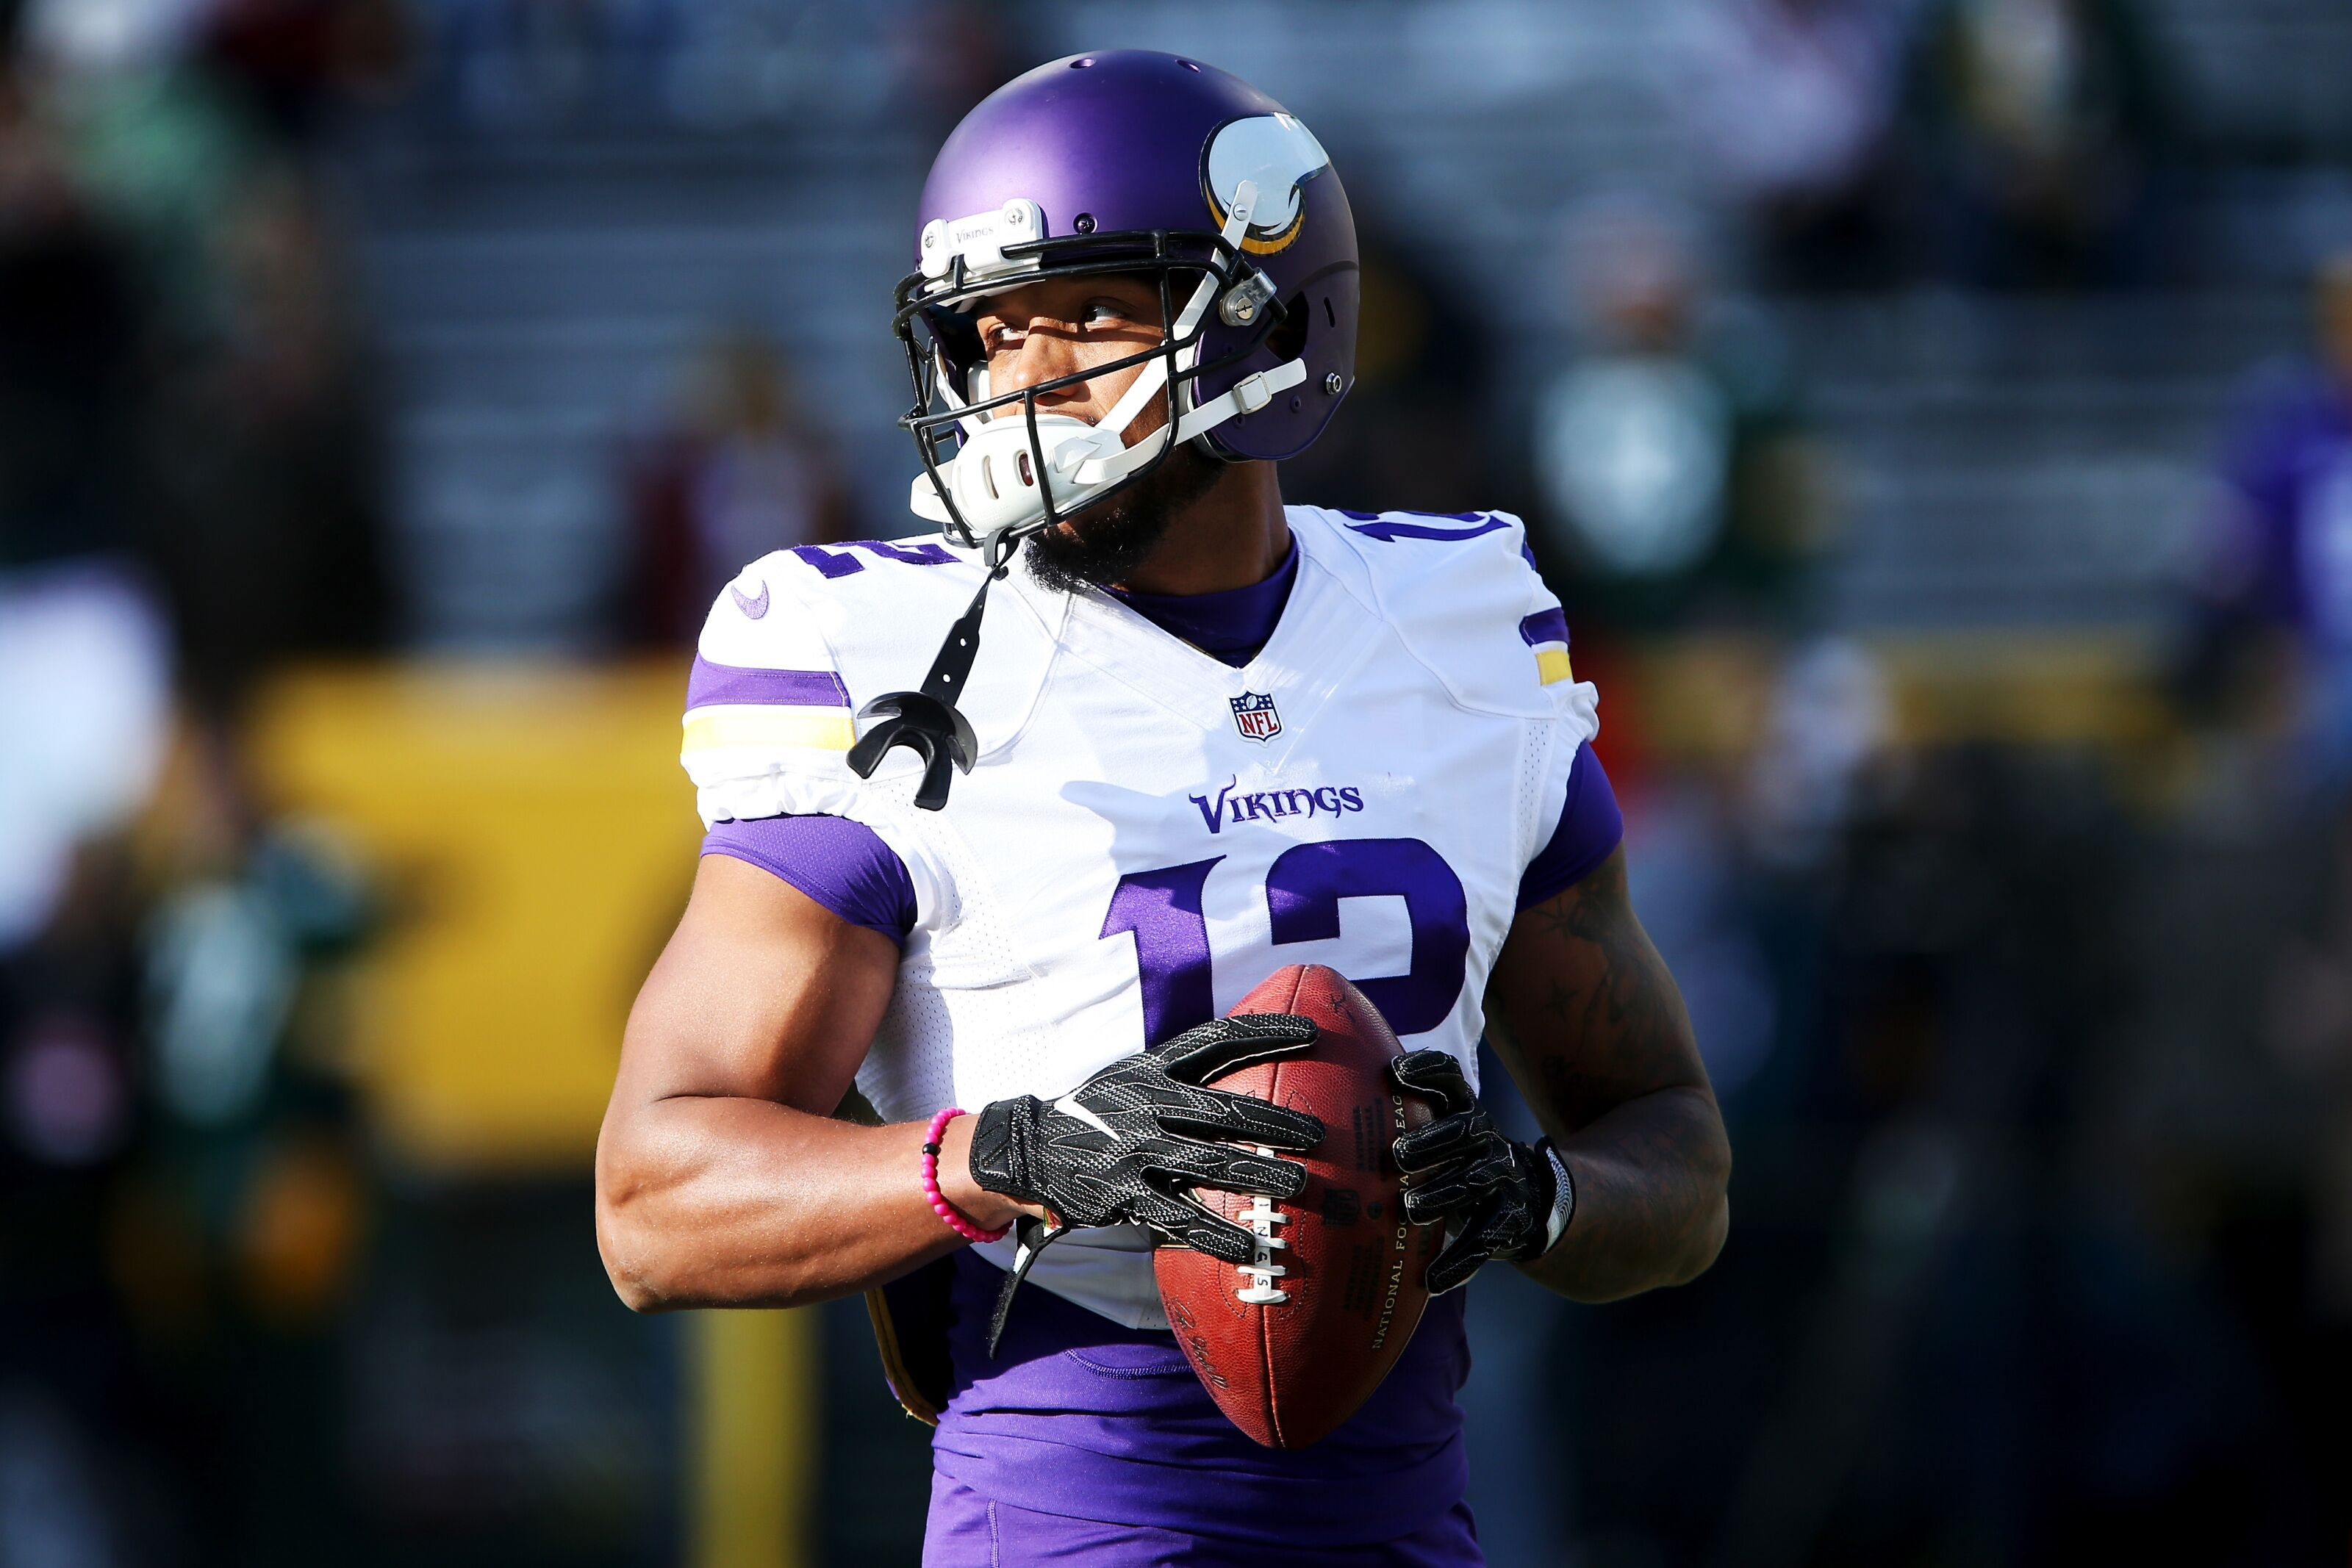 Former Vikings receiver has impressive day in new football league